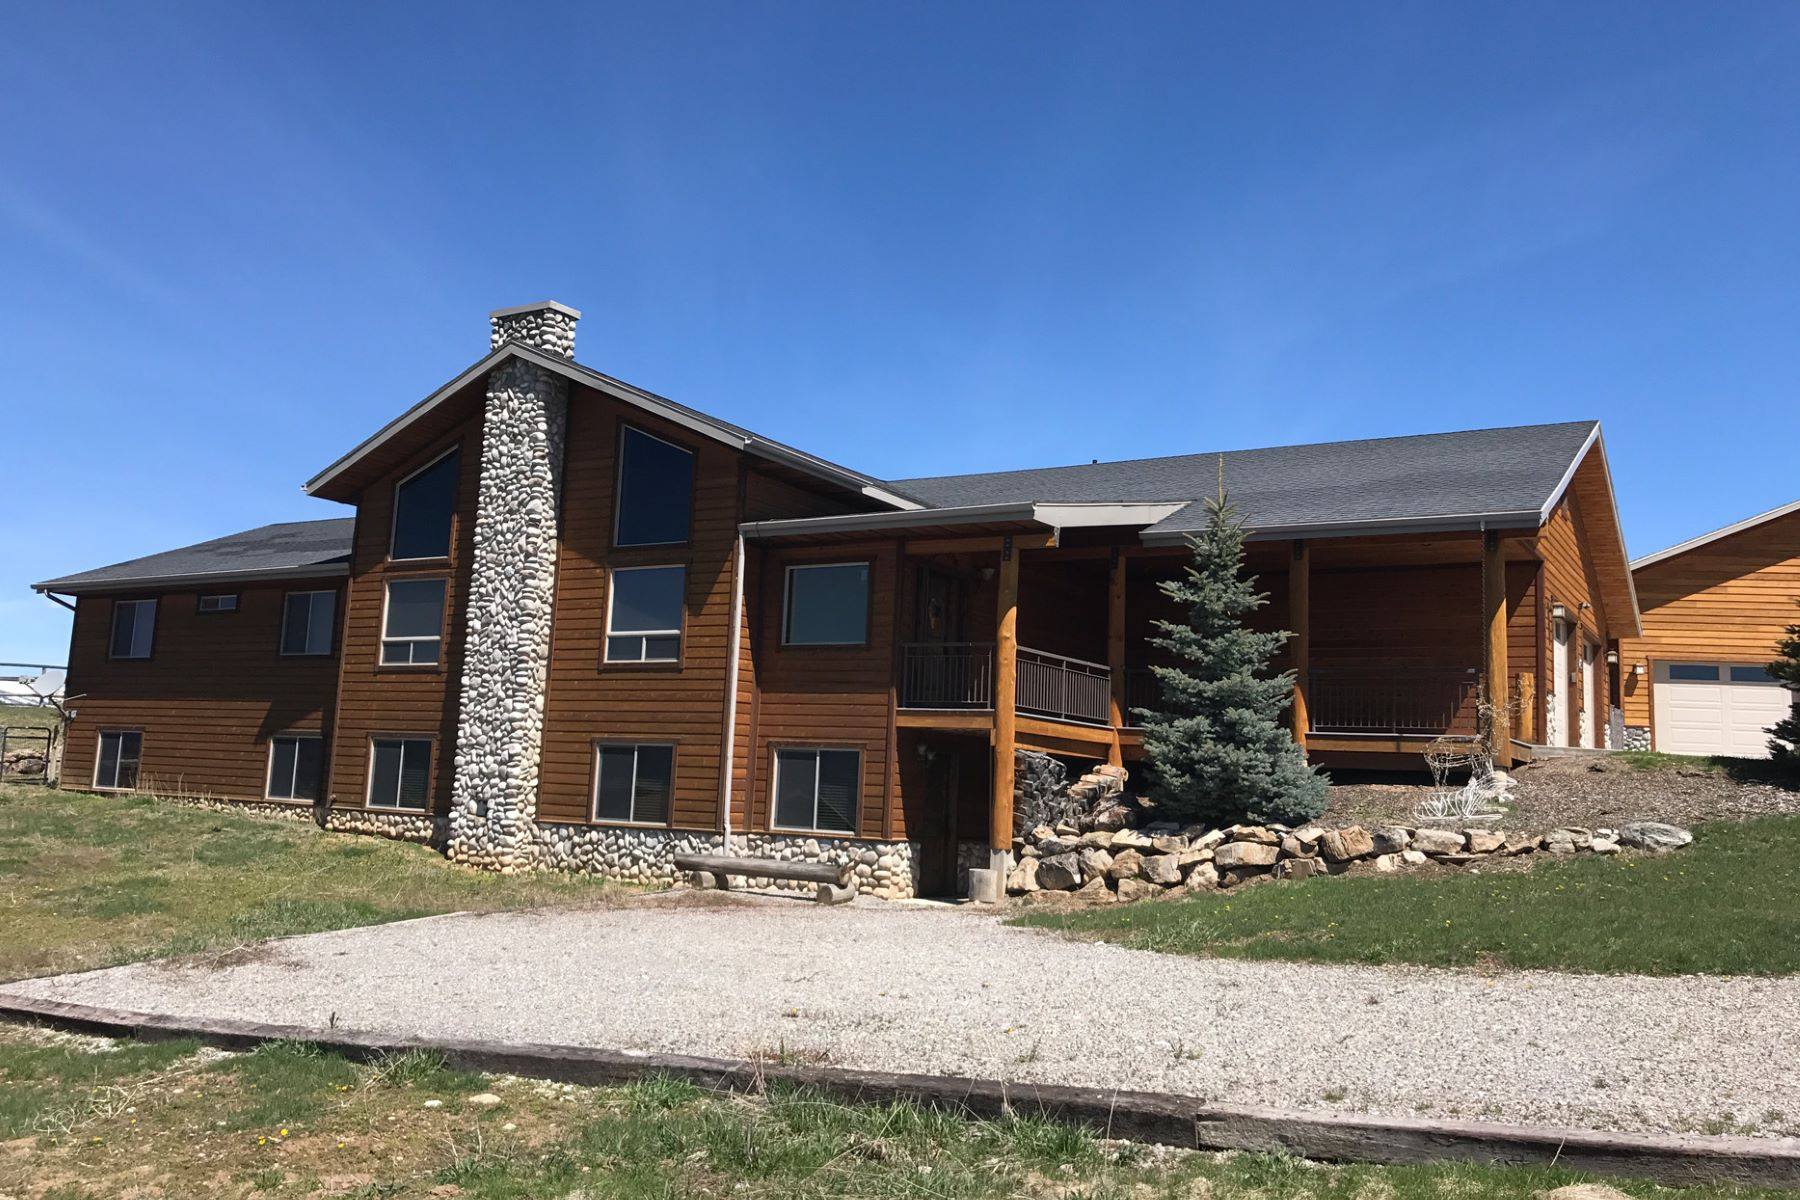 Single Family Home for Sale at Extremely Well Maintained Home 265 Quaking Aspen Way, Etna, Wyoming, 83118 United States